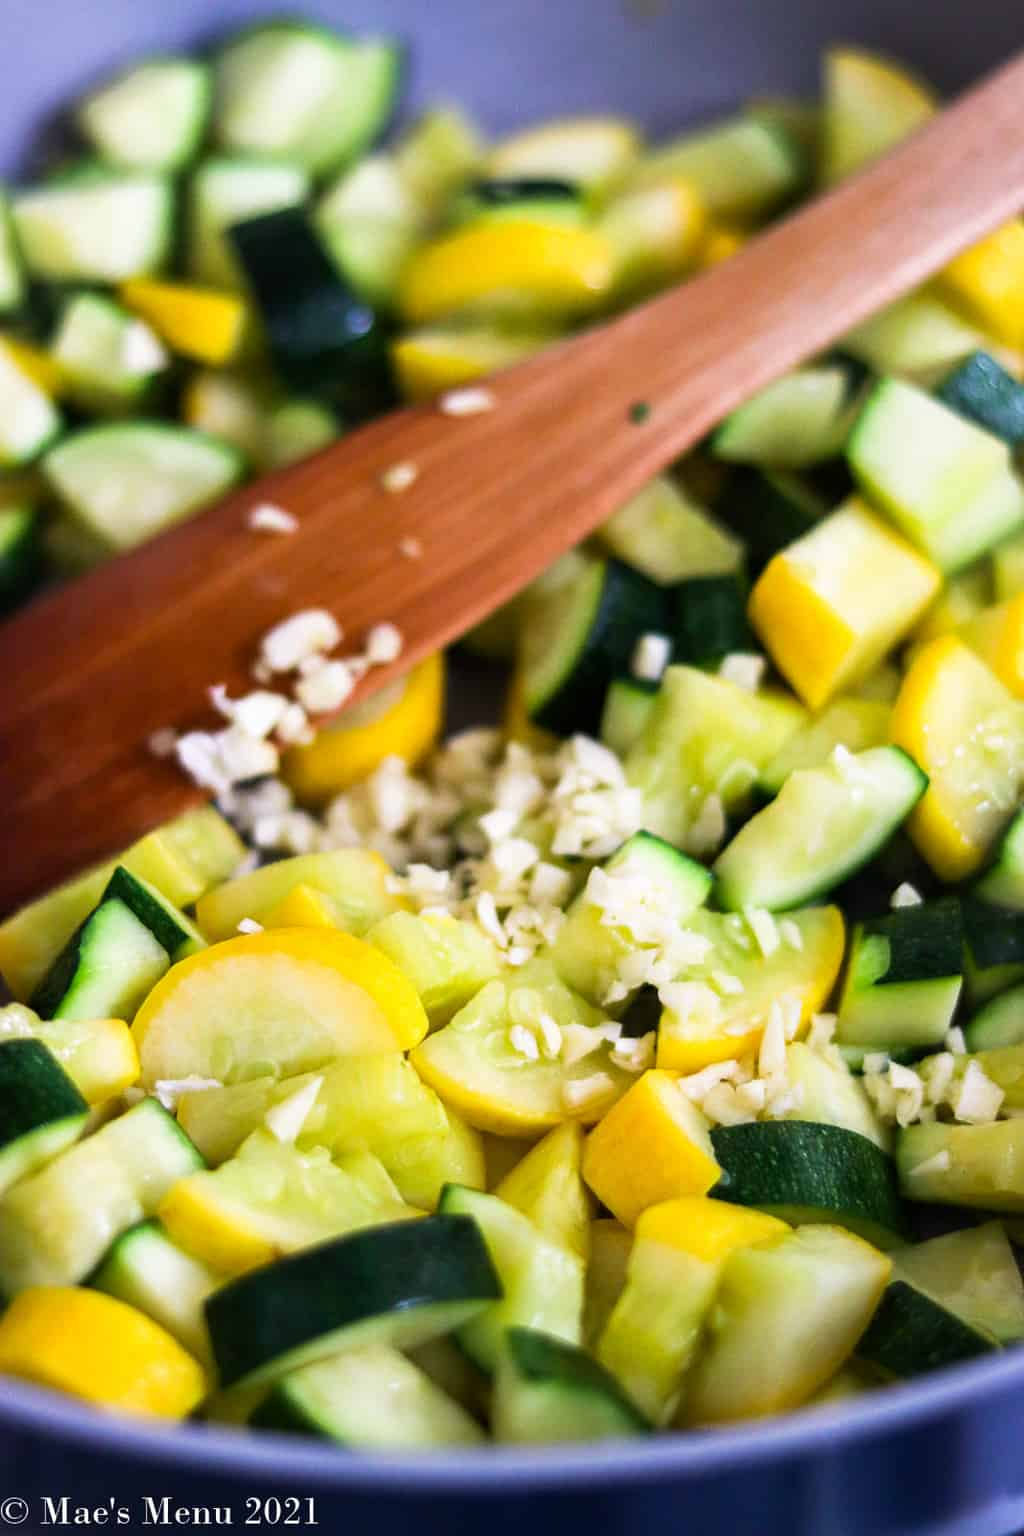 An up-close shot of yellow squash and zucchini with garlic in a saute pan